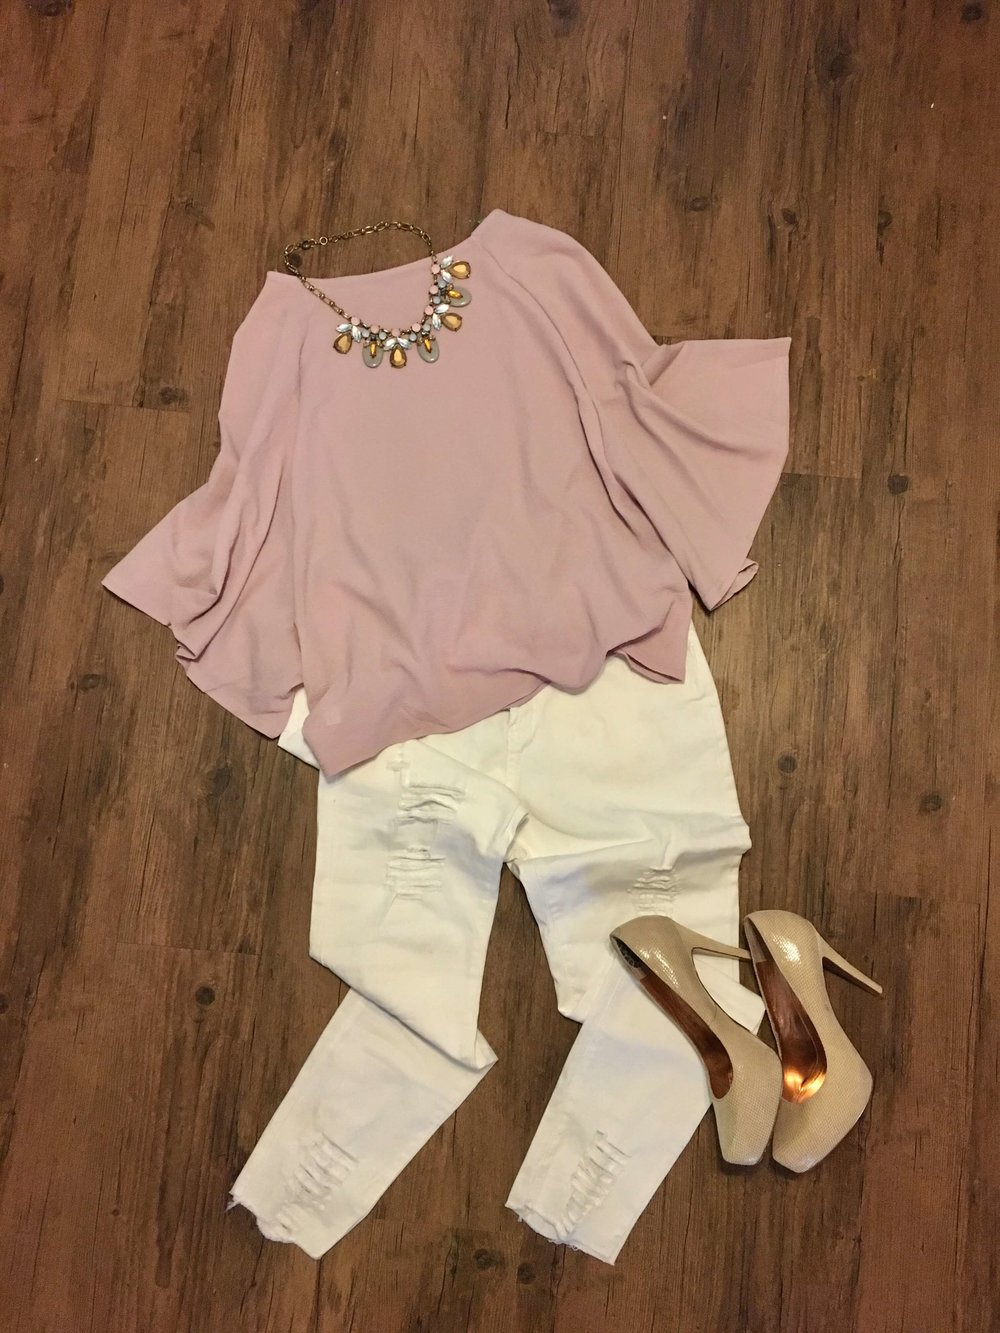 Lavender top with white distressed jeans from Fashom!